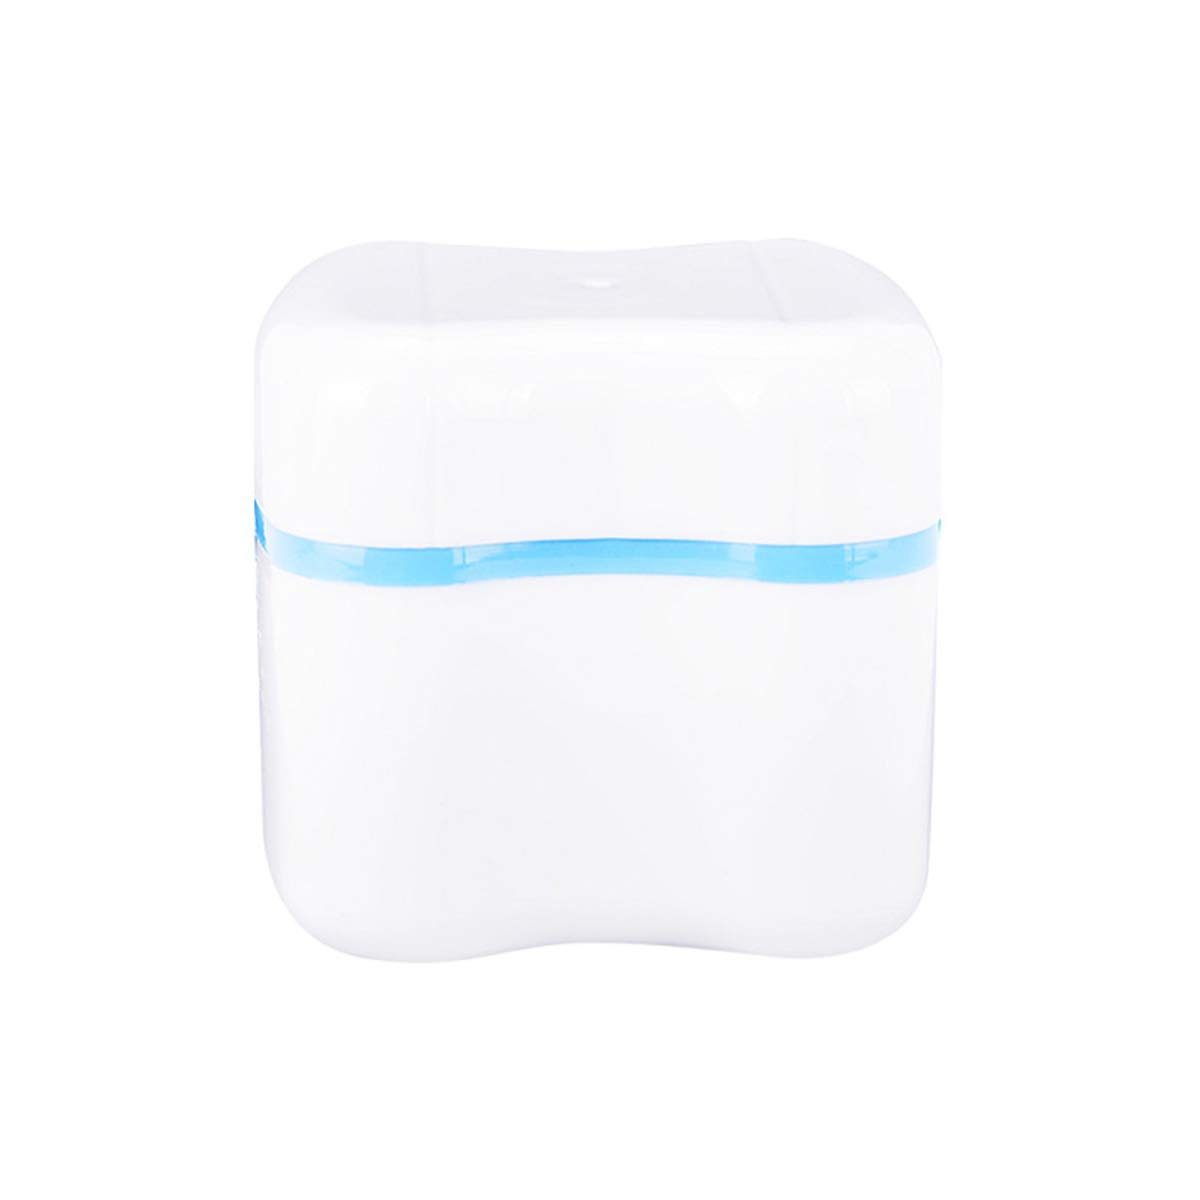 TJIRIS 50 Pieces Plastic Boxes Denture Bruth Retainer Case Container Box with Rinse Basket for Cleaning and Stroage